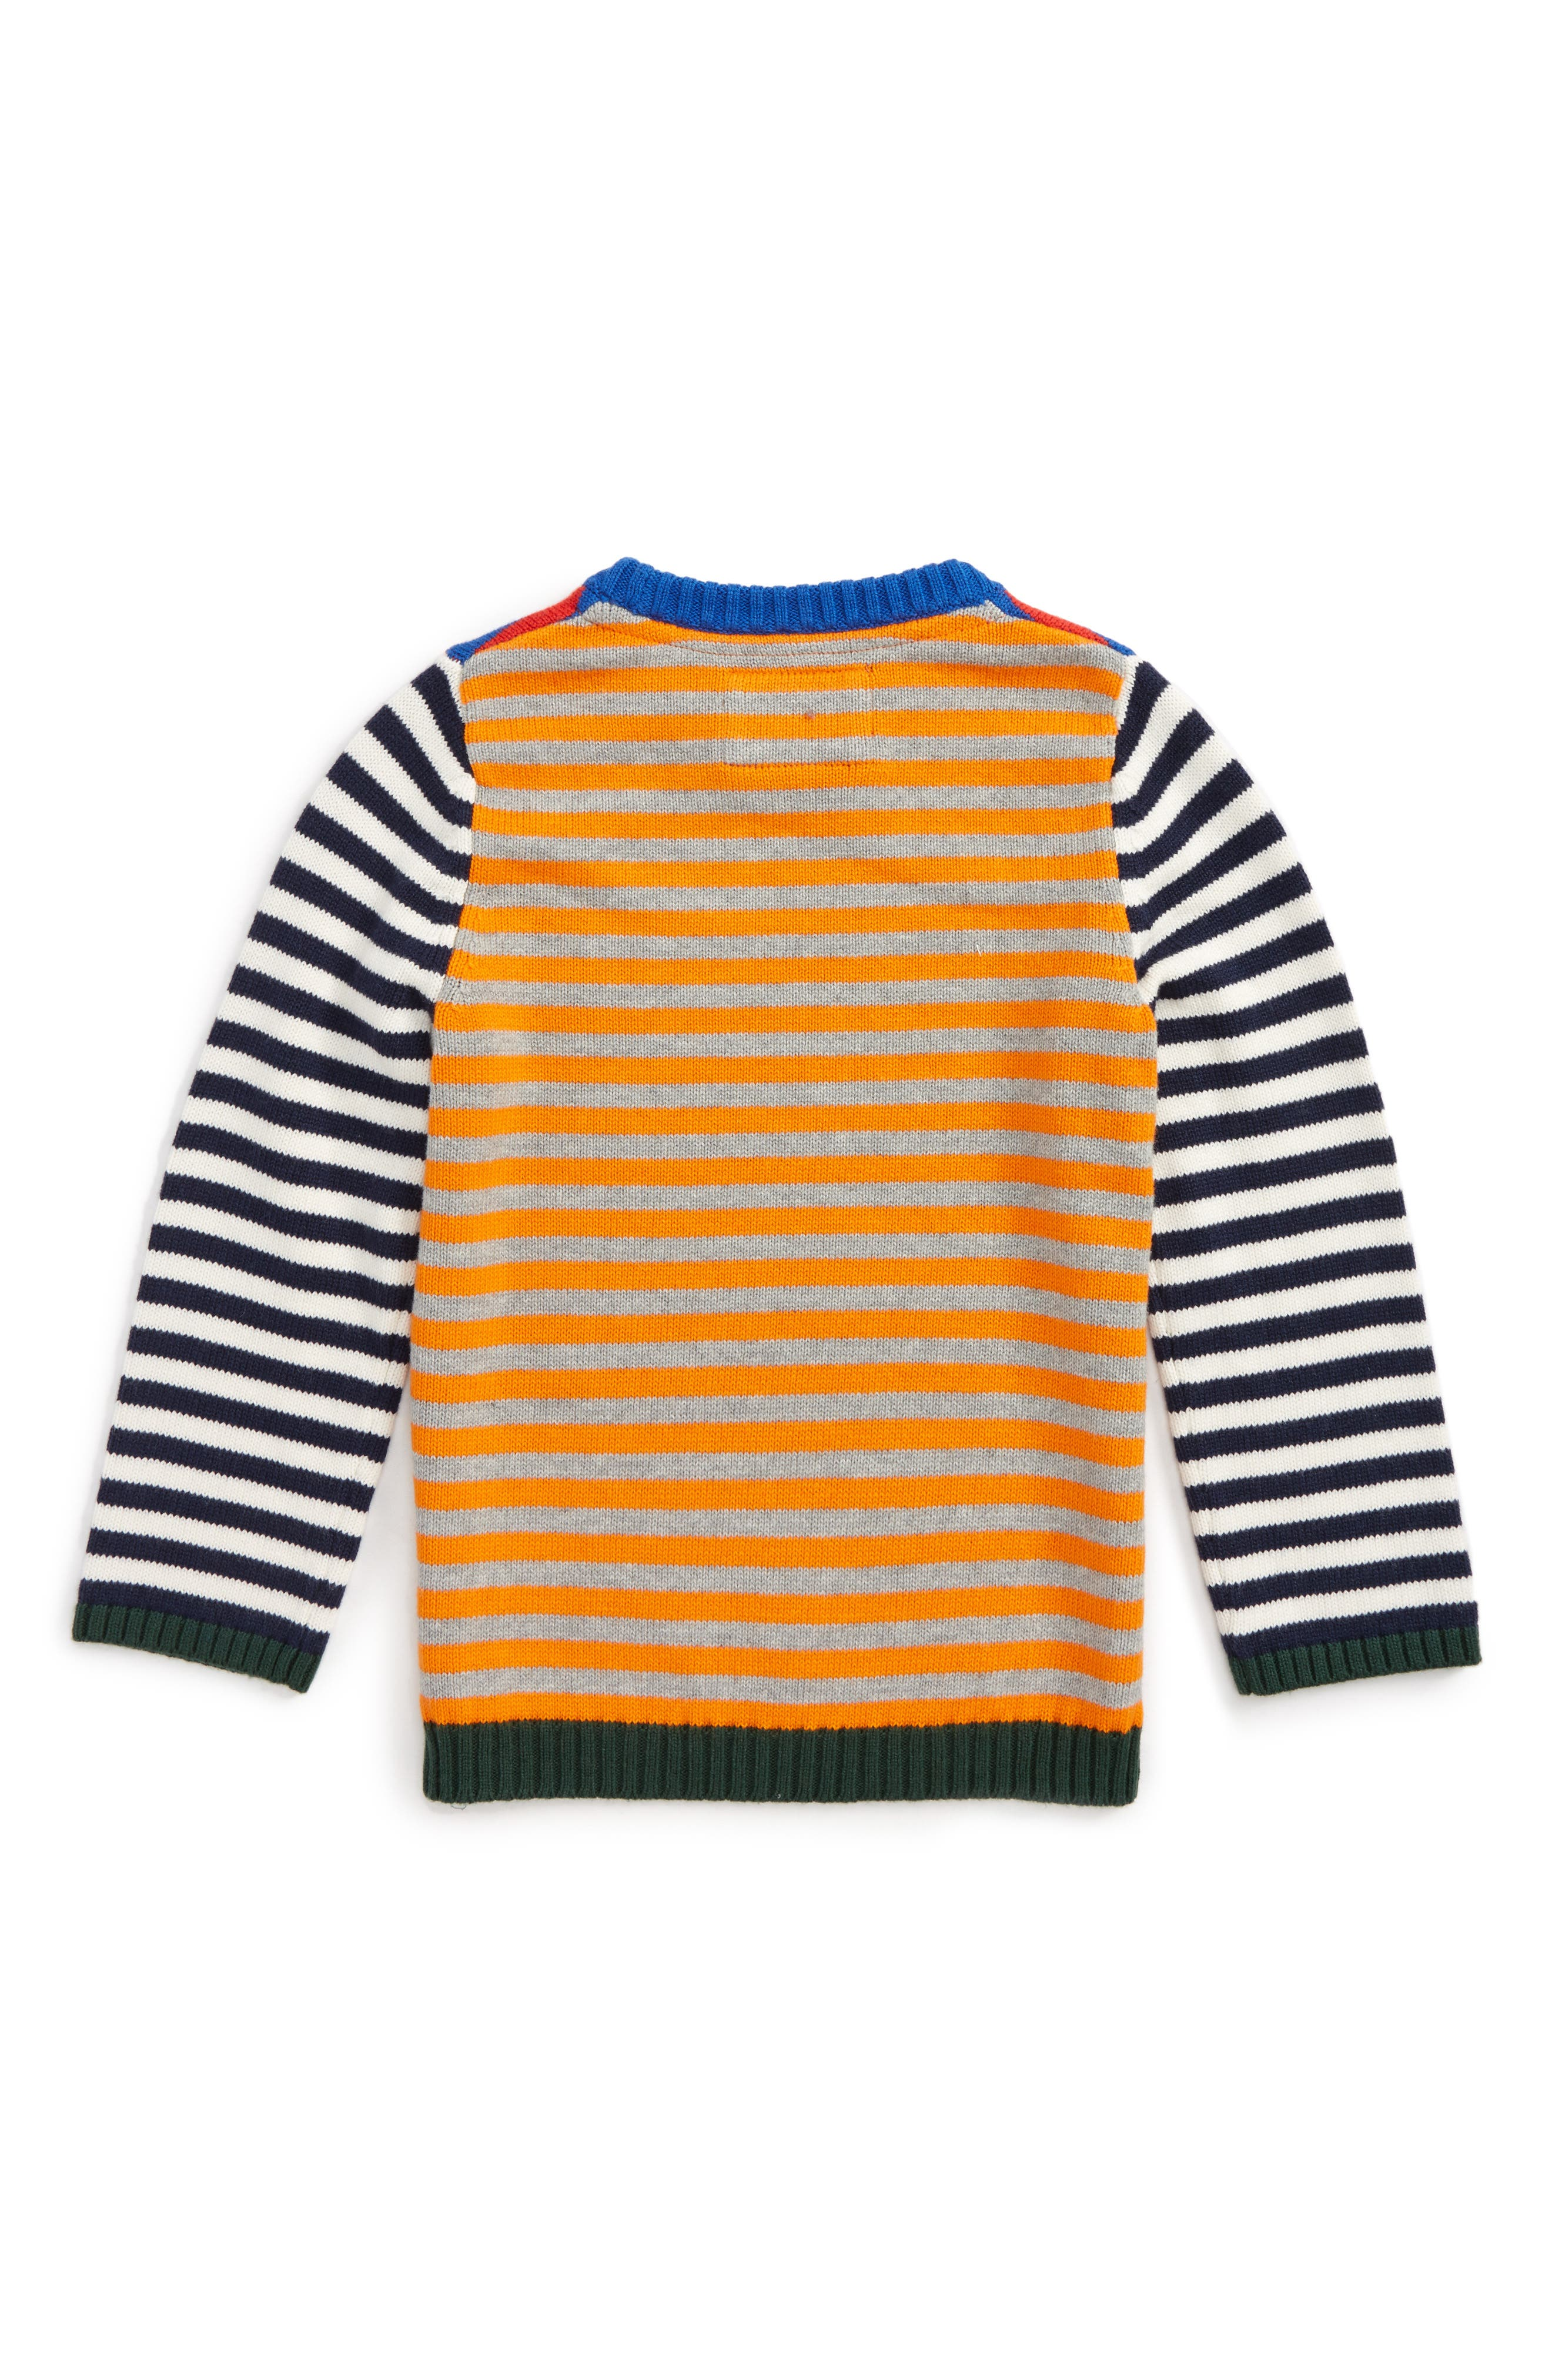 Hotchpotch Sweater,                             Alternate thumbnail 2, color,                             604